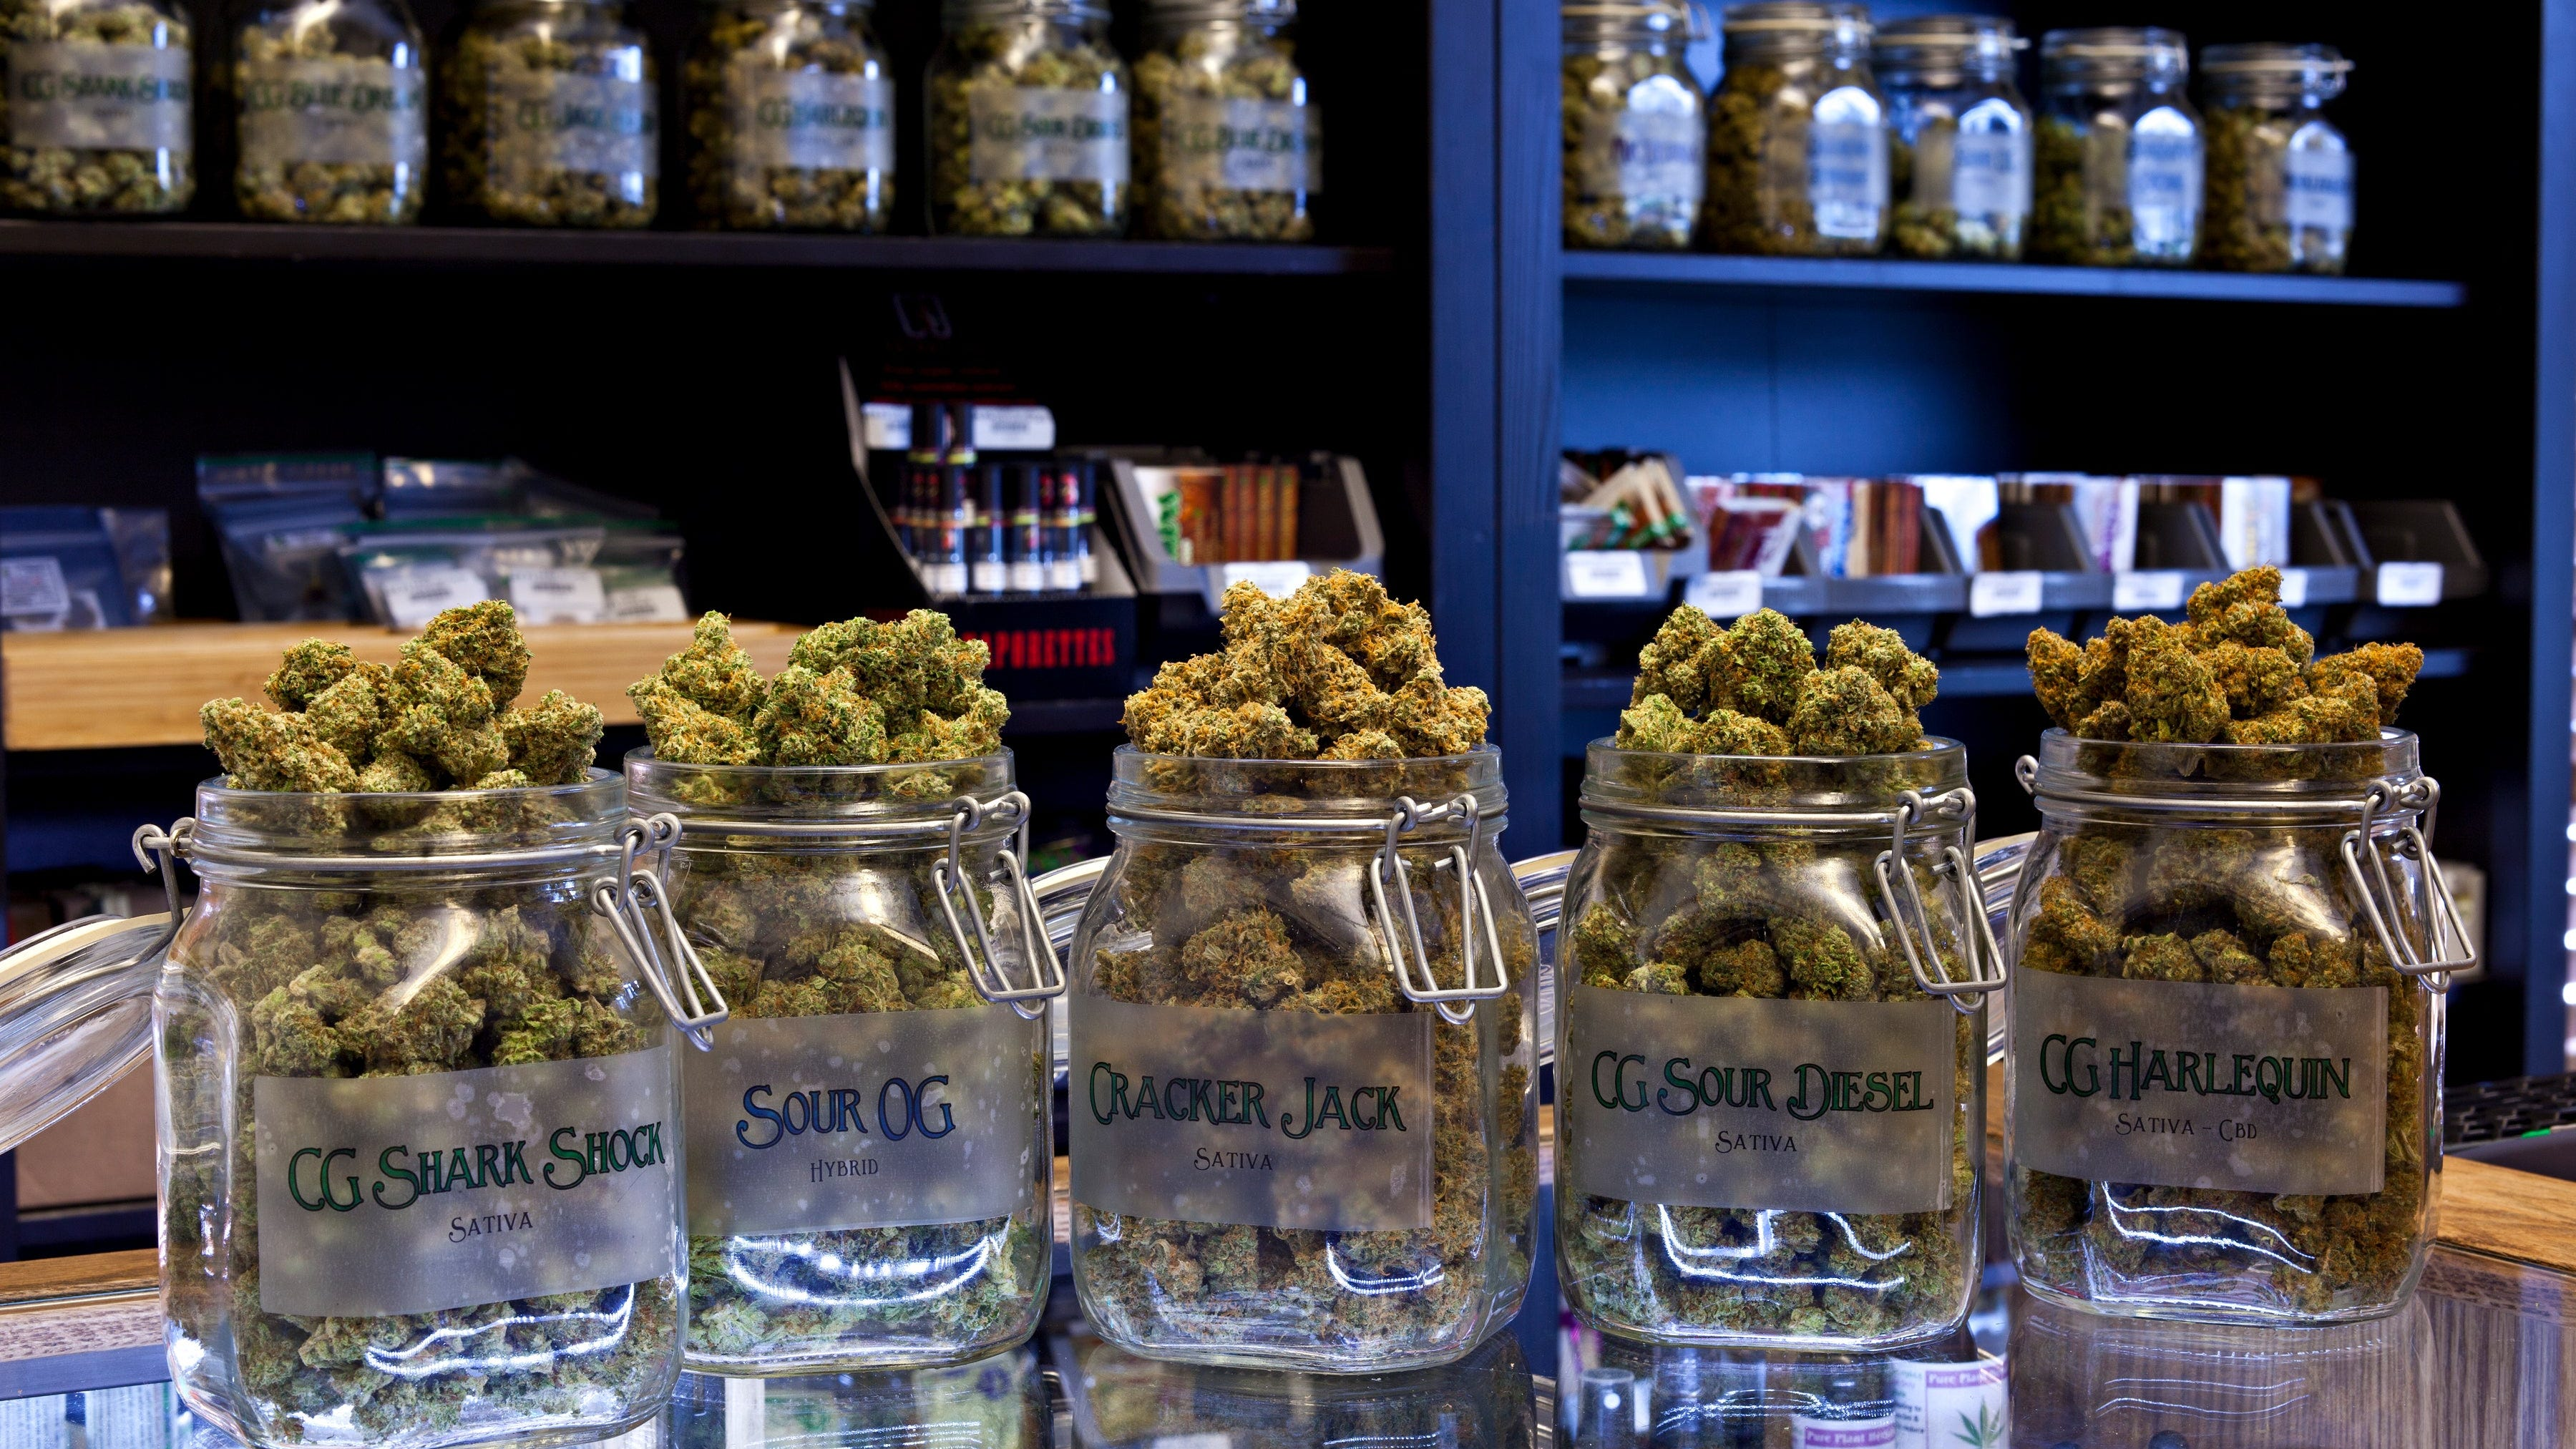 herbal care llc sues nevada over state regulations, excessive fines  reno gazette-journal